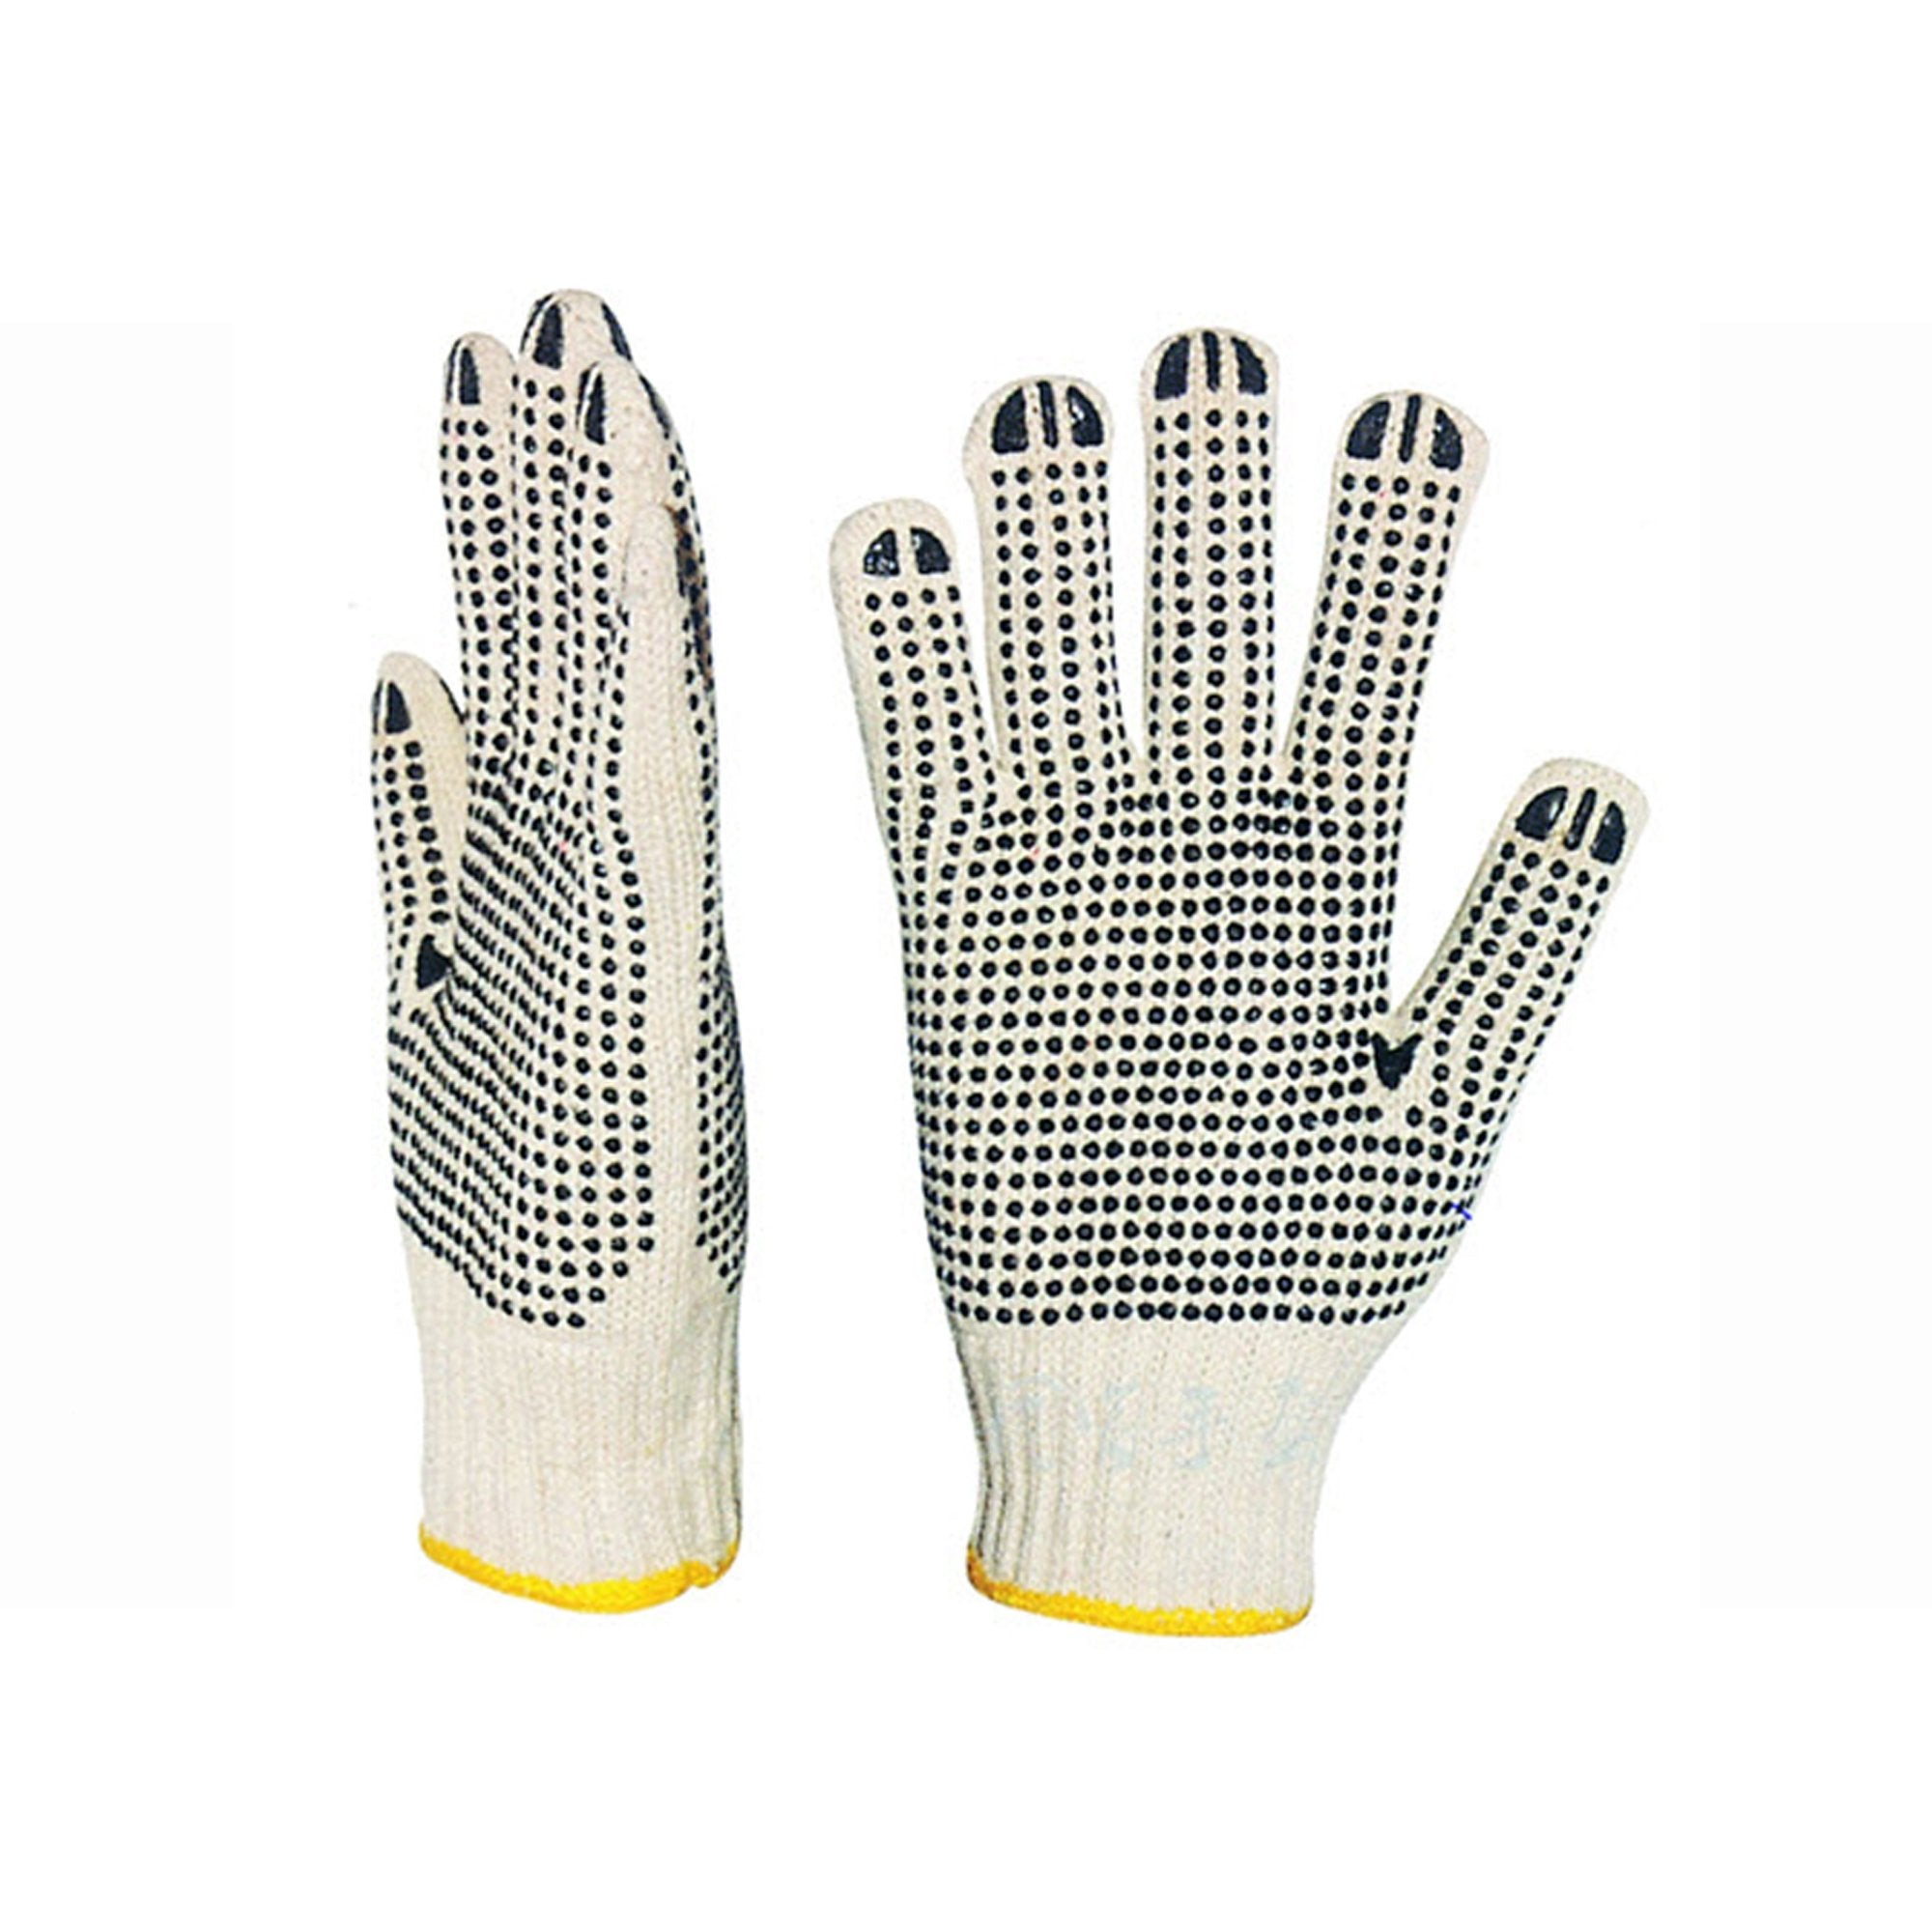 Gloves, Cotton Knitted (1 Side with Dots)